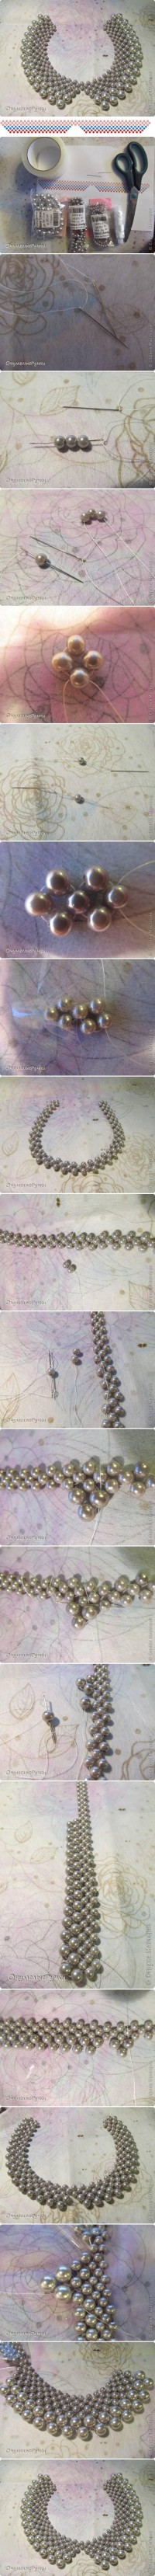 DIY Collar of Beads Necklace DIY Projects | UsefulDIY.com